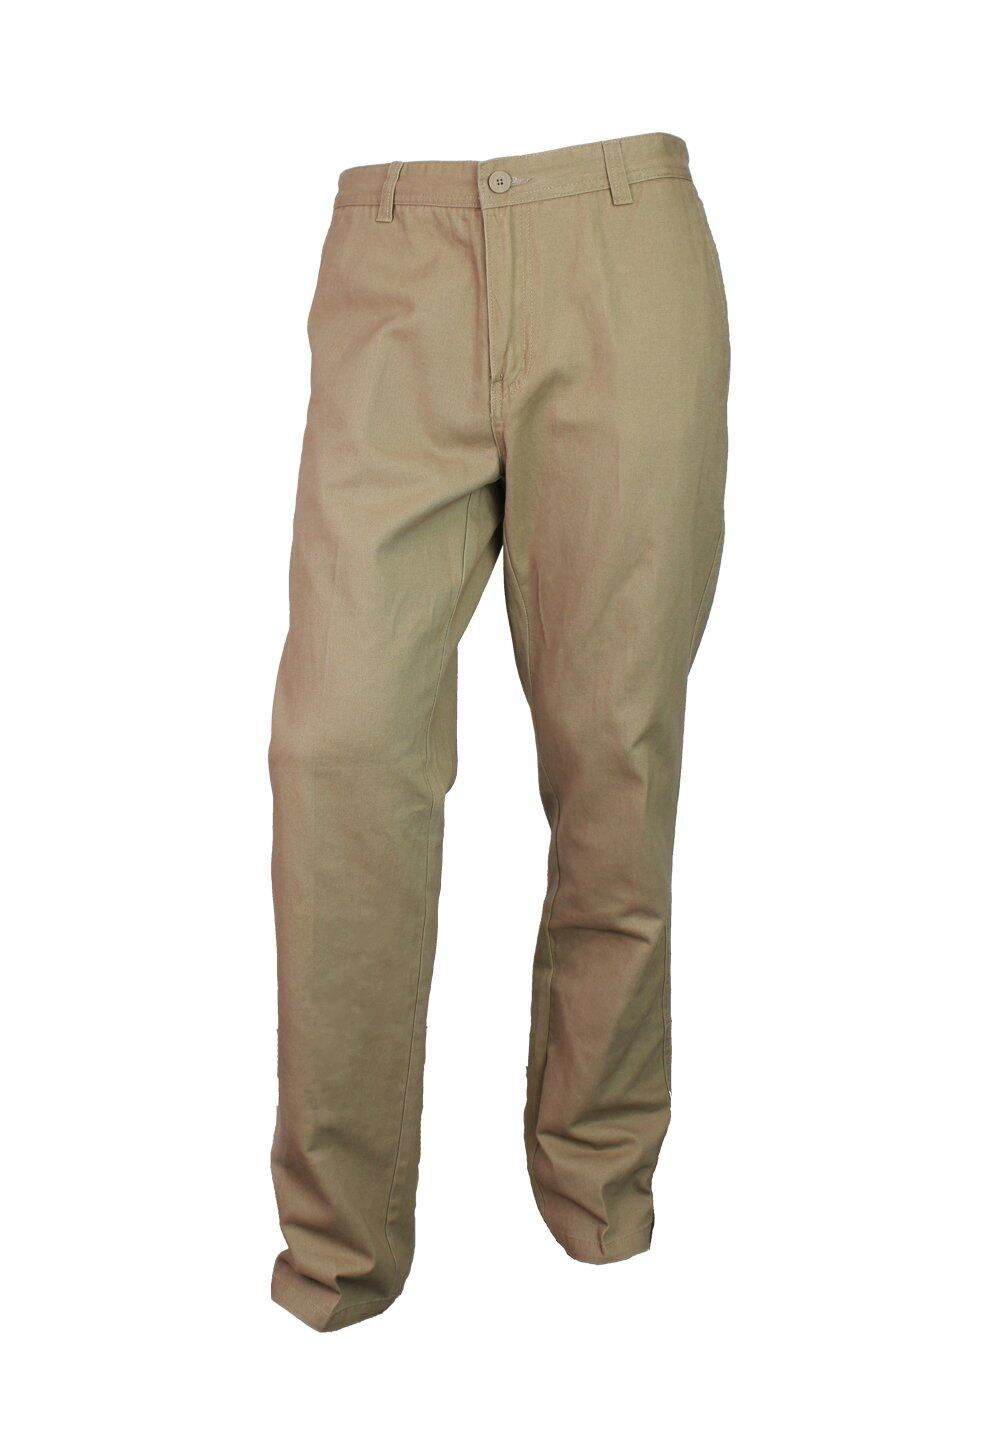 Exhaust Chino Cotton Long Pant-Plus Size 935